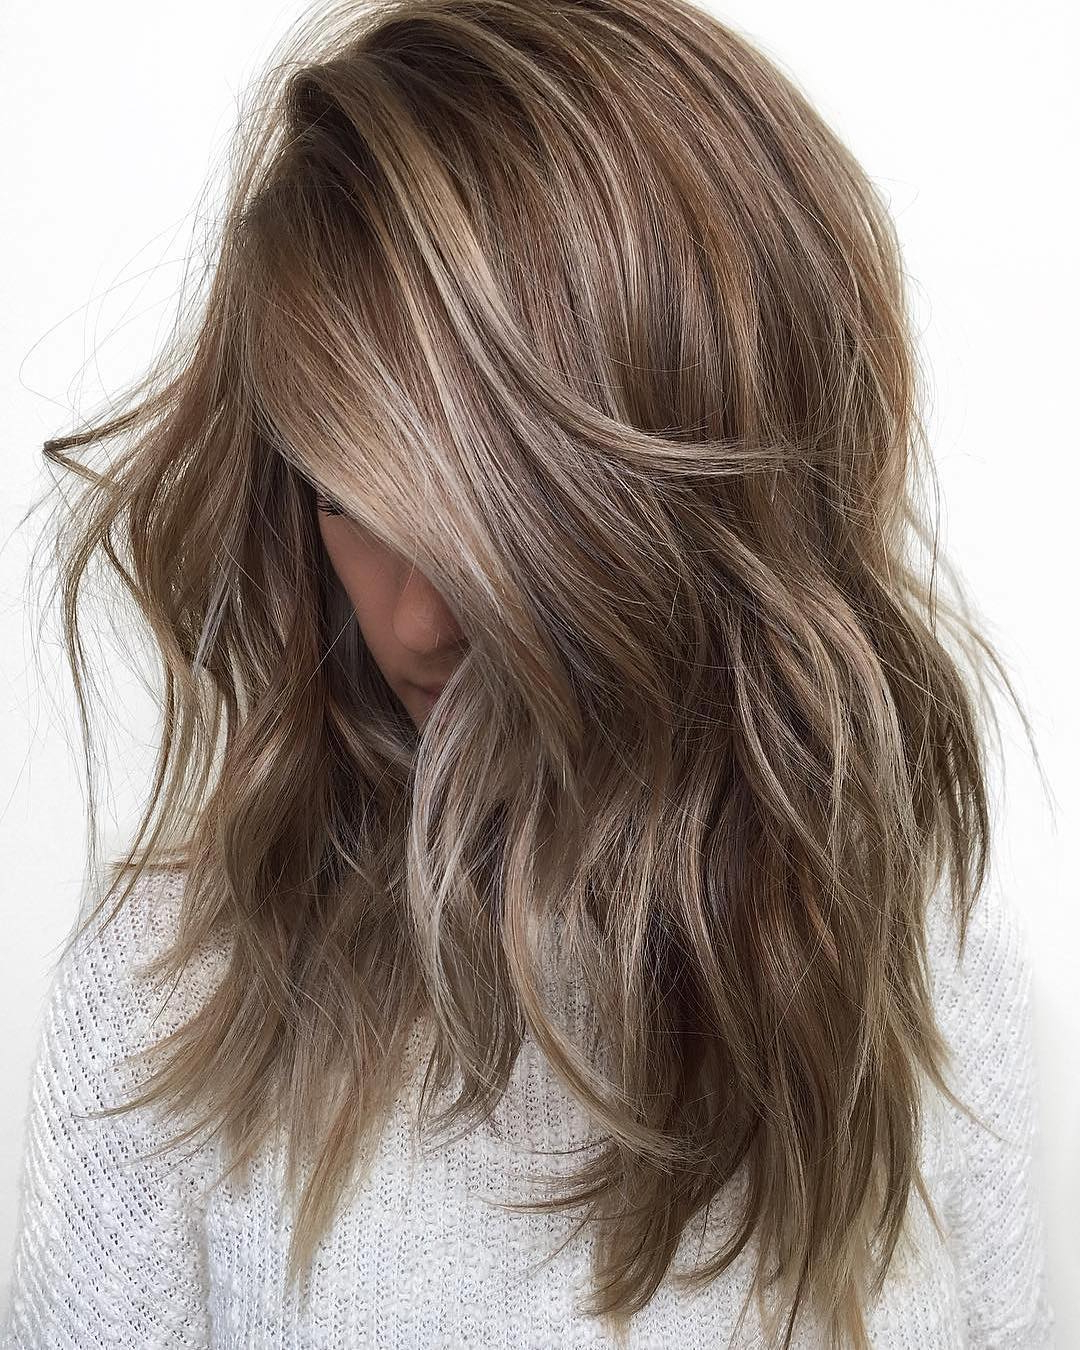 10 Balayage Ombre Hair Styles For Shoulder Length Hair, Women In Most Current Bedhead Layers For Long Hairstyles (Gallery 6 of 20)